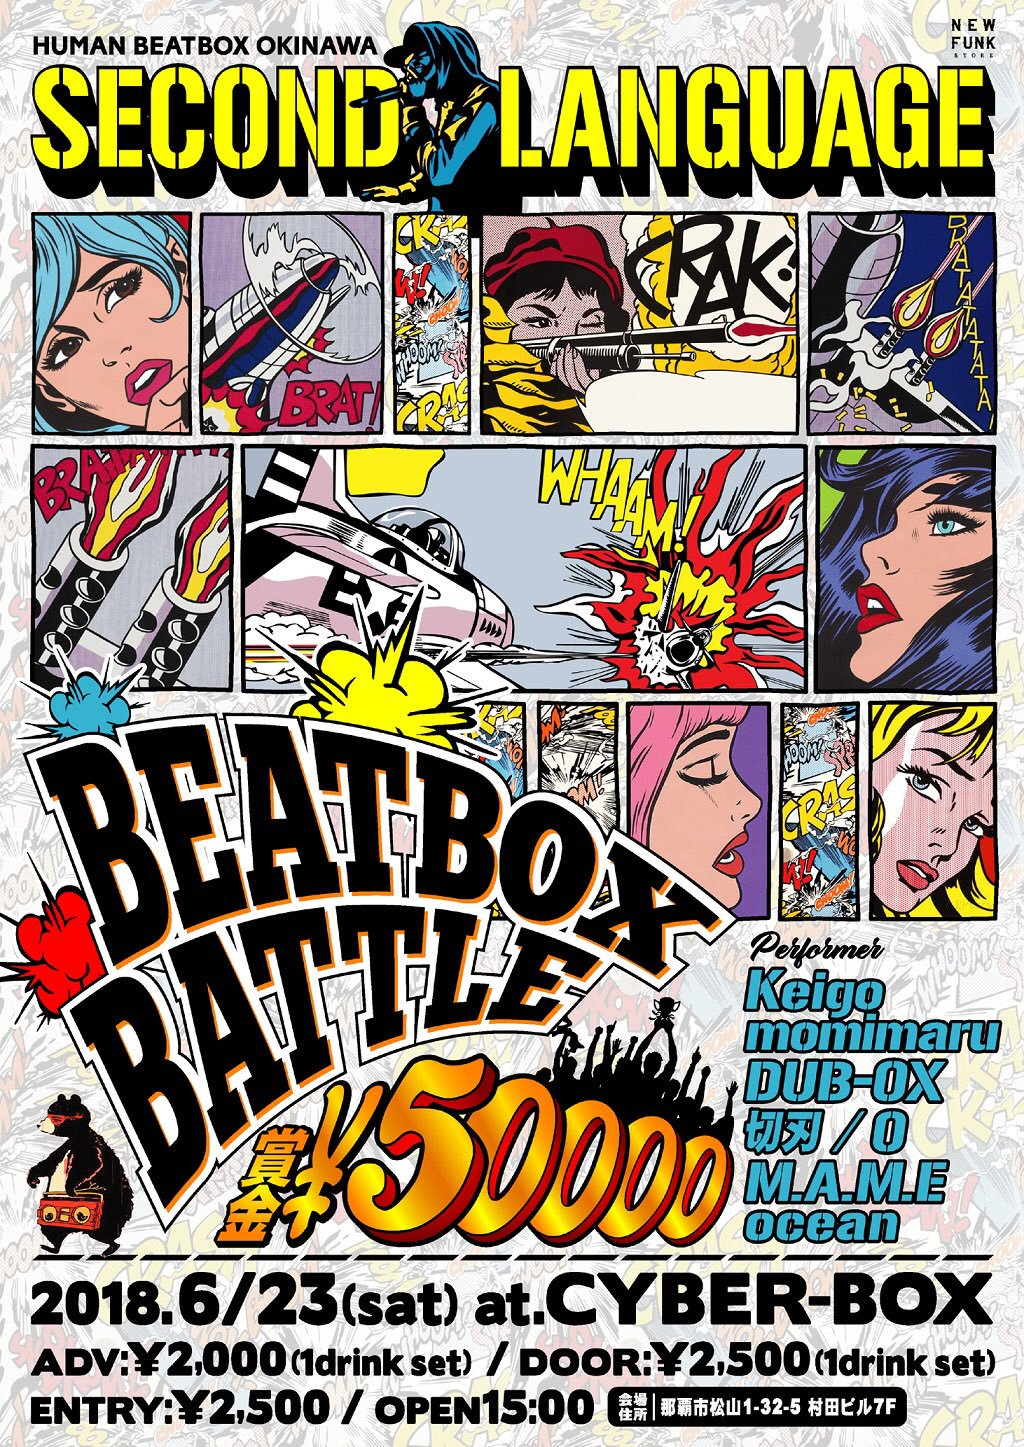 Second Language Beatbox Battleの開催が決定!